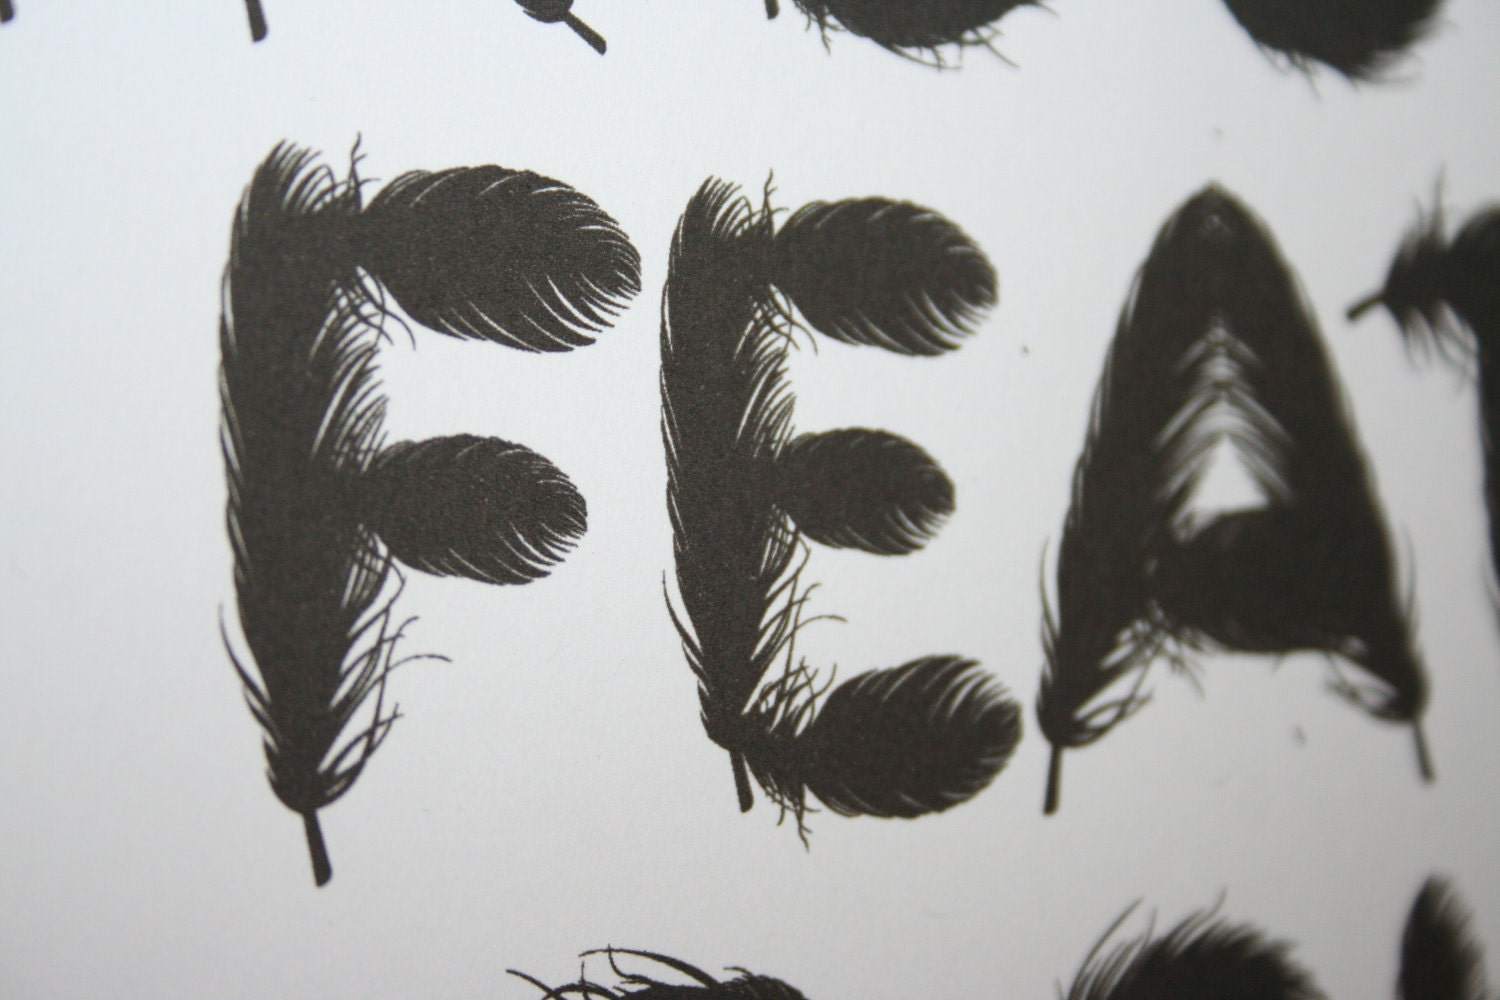 A3 'Birds of a feather flock together' Illustrative type print.